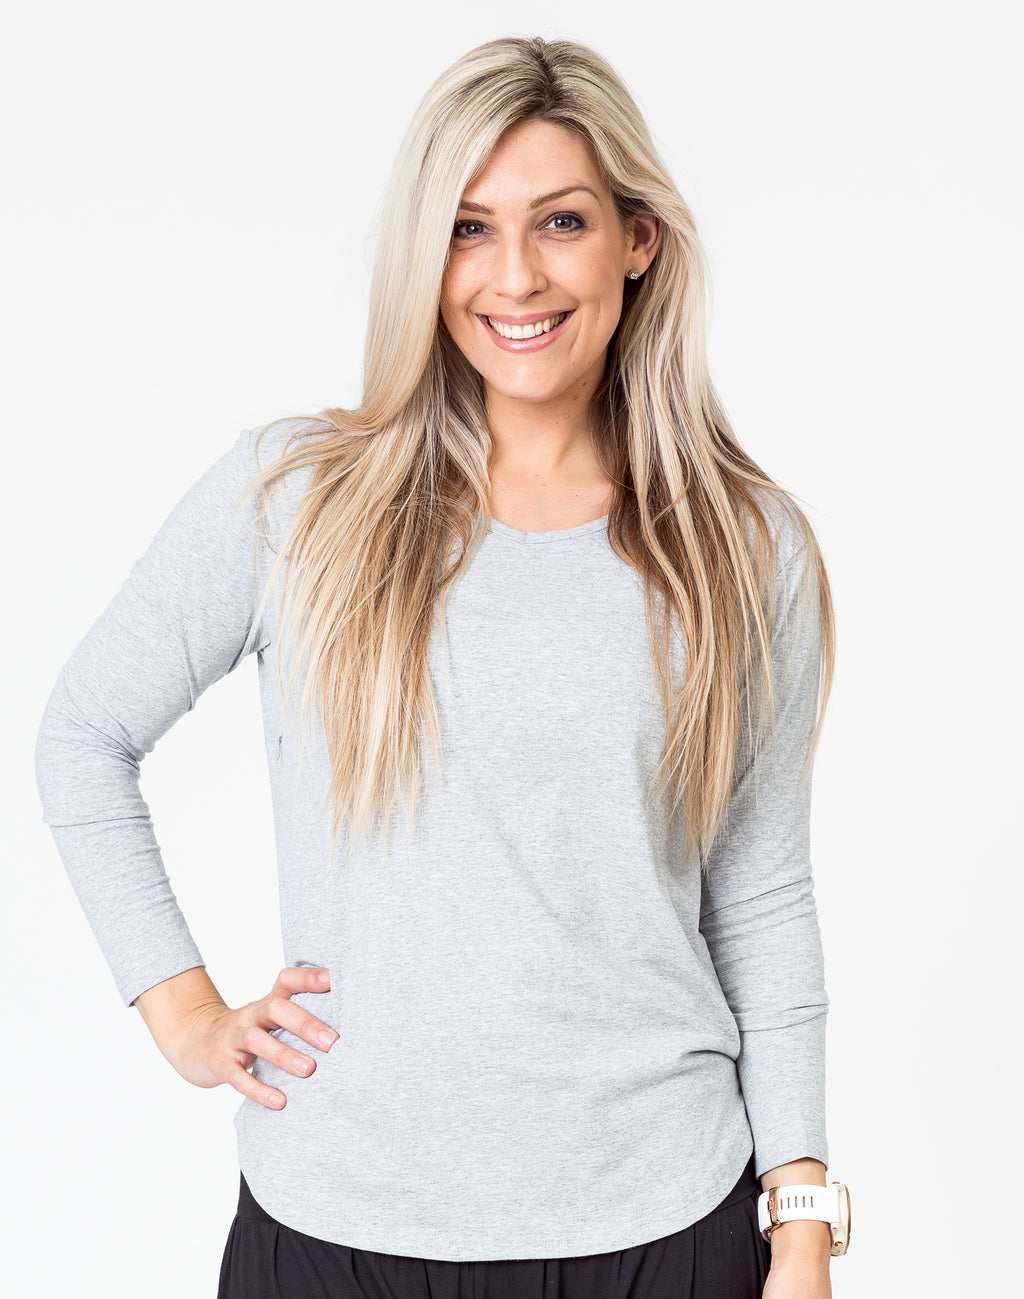 active mum wearing a grey maternity top with long sleeves and invisible zips for breastfeeding